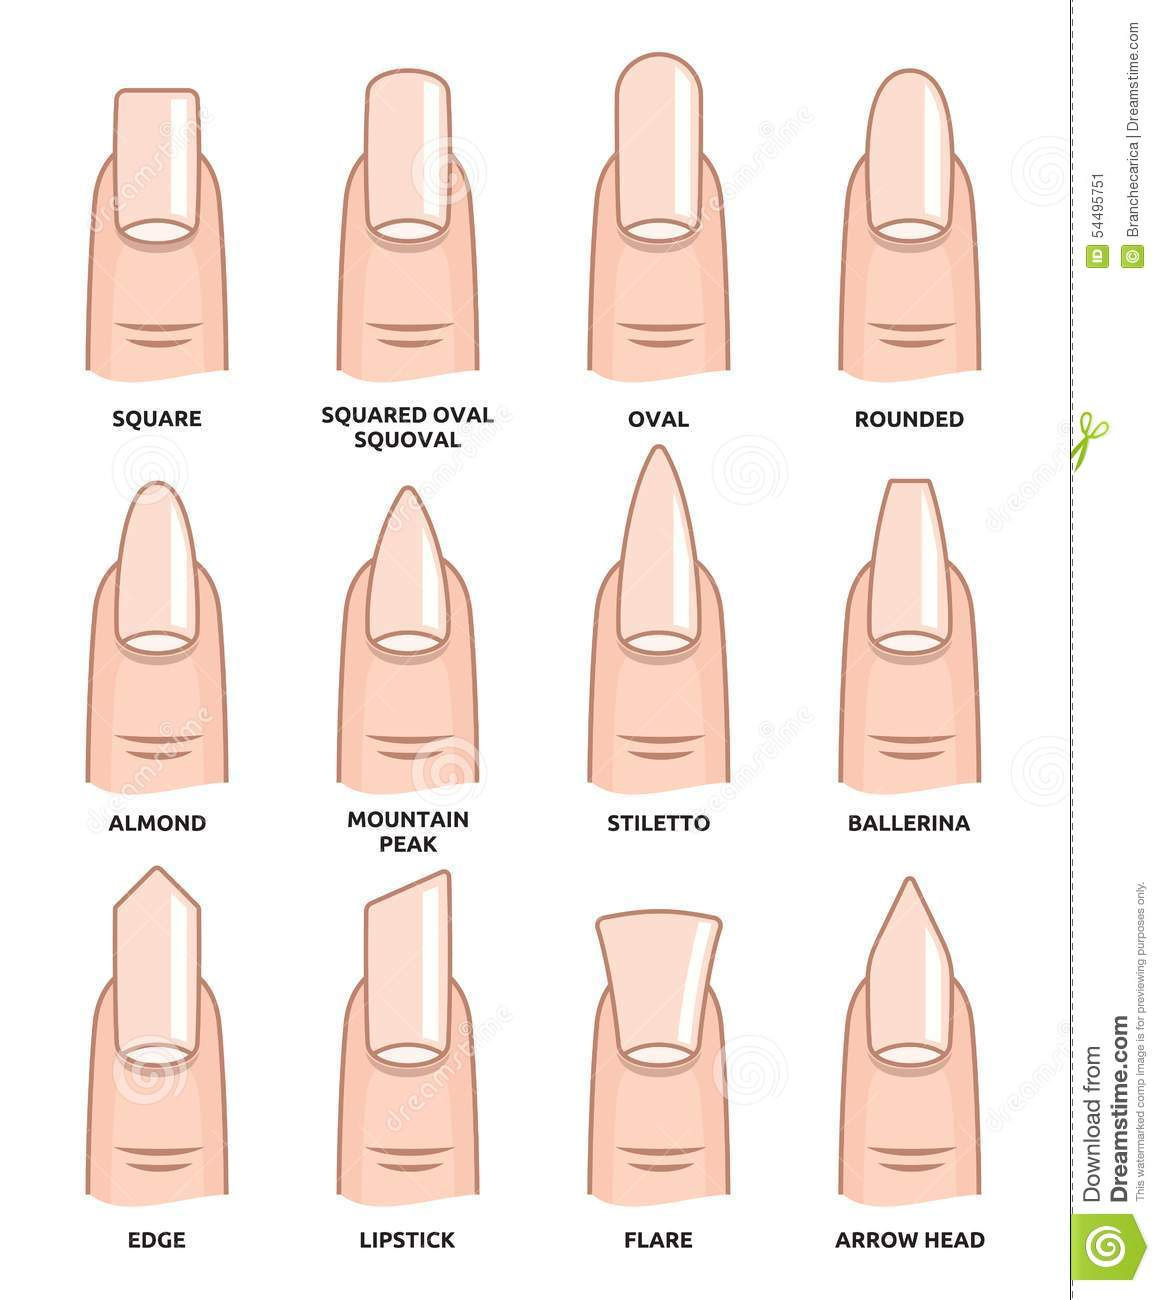 Different nail shapes fingernails fashion trends stock illustration image 54495751